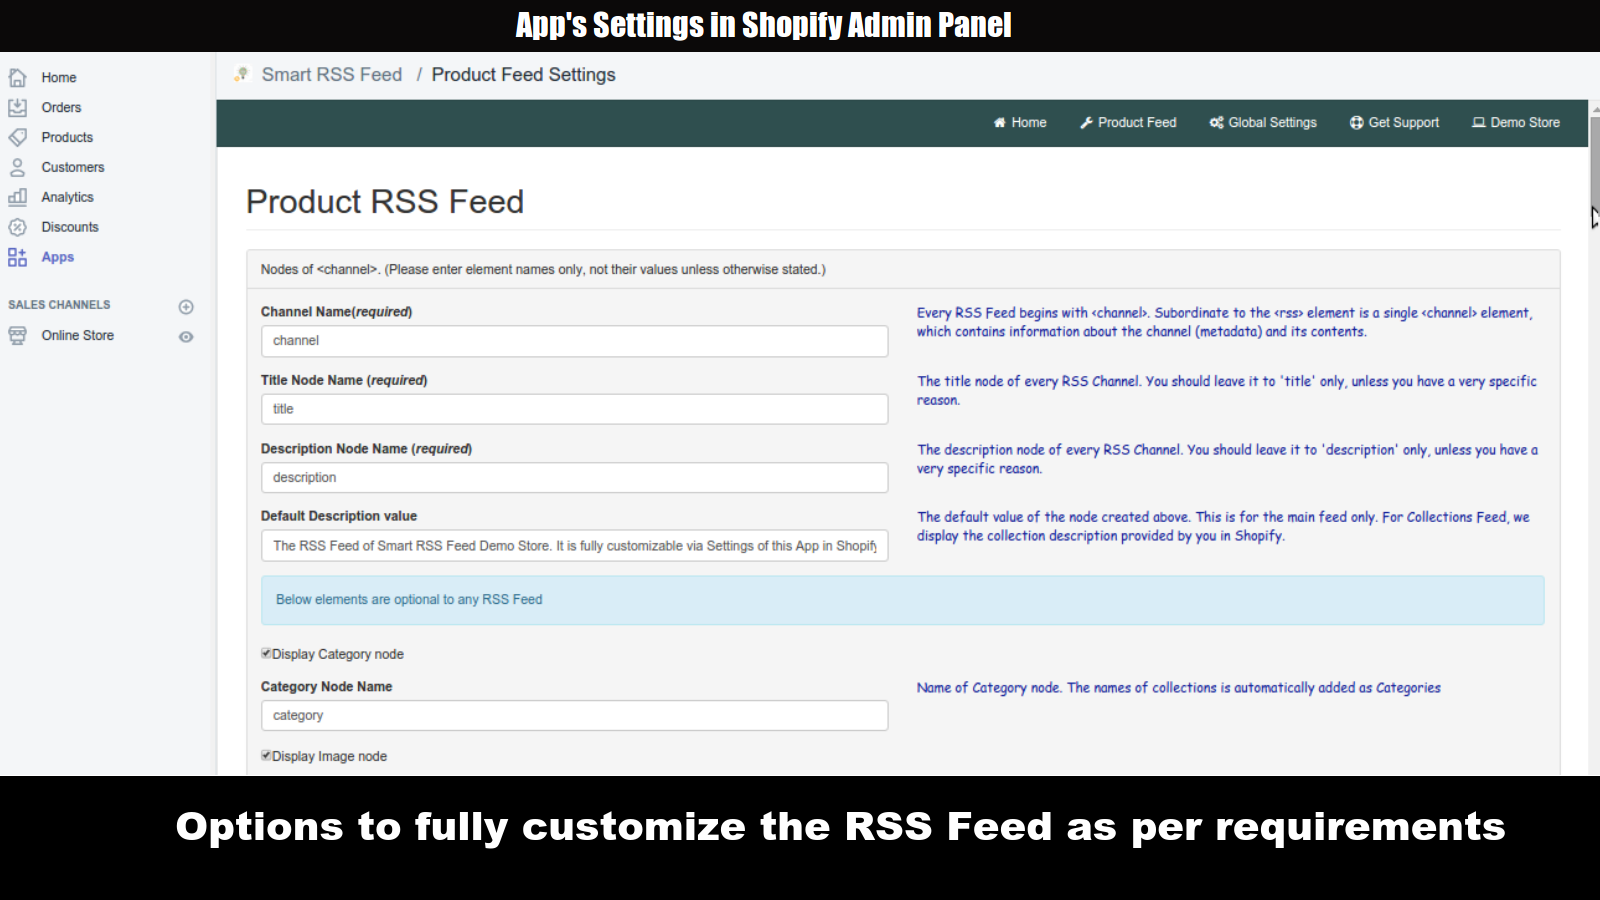 Configuration Options for Smart RSS Feed